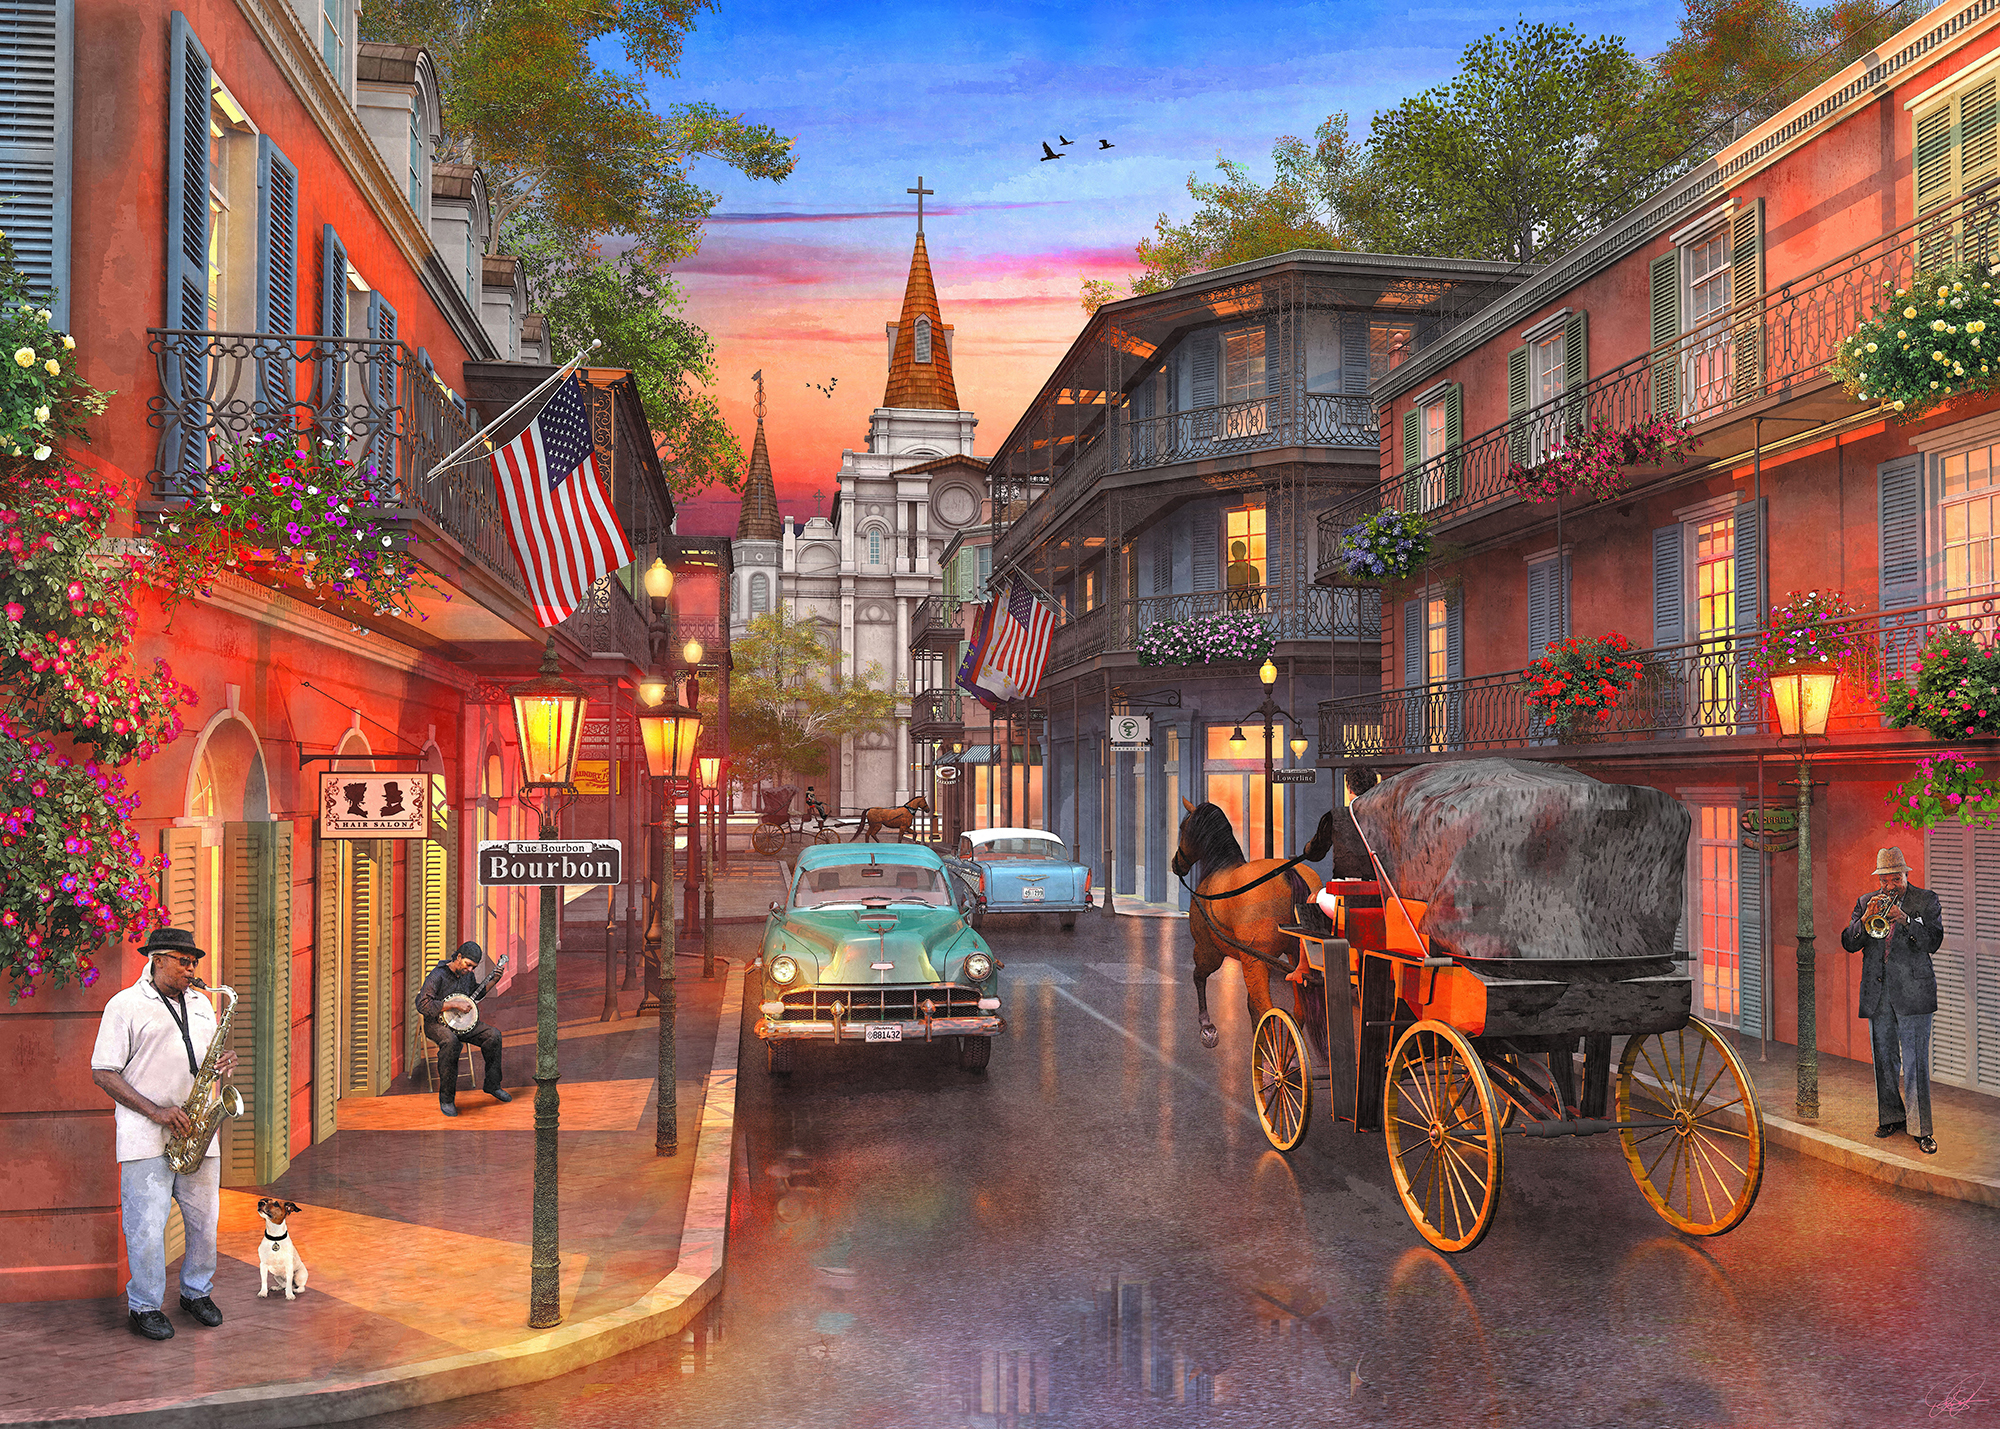 Bourbon Street 1000 Piece Jigsaw Puzzle on floor puzzles, australian puzzles, map puzzles easy, map of continents, map desktop wallpaper, melissa and doug knob puzzles, large disney puzzles, map puzzles online, european puzzles, north american wildlife puzzles, map of countries the uk, printable world geography puzzles, map of germany and austria, wildlife gallery puzzles,